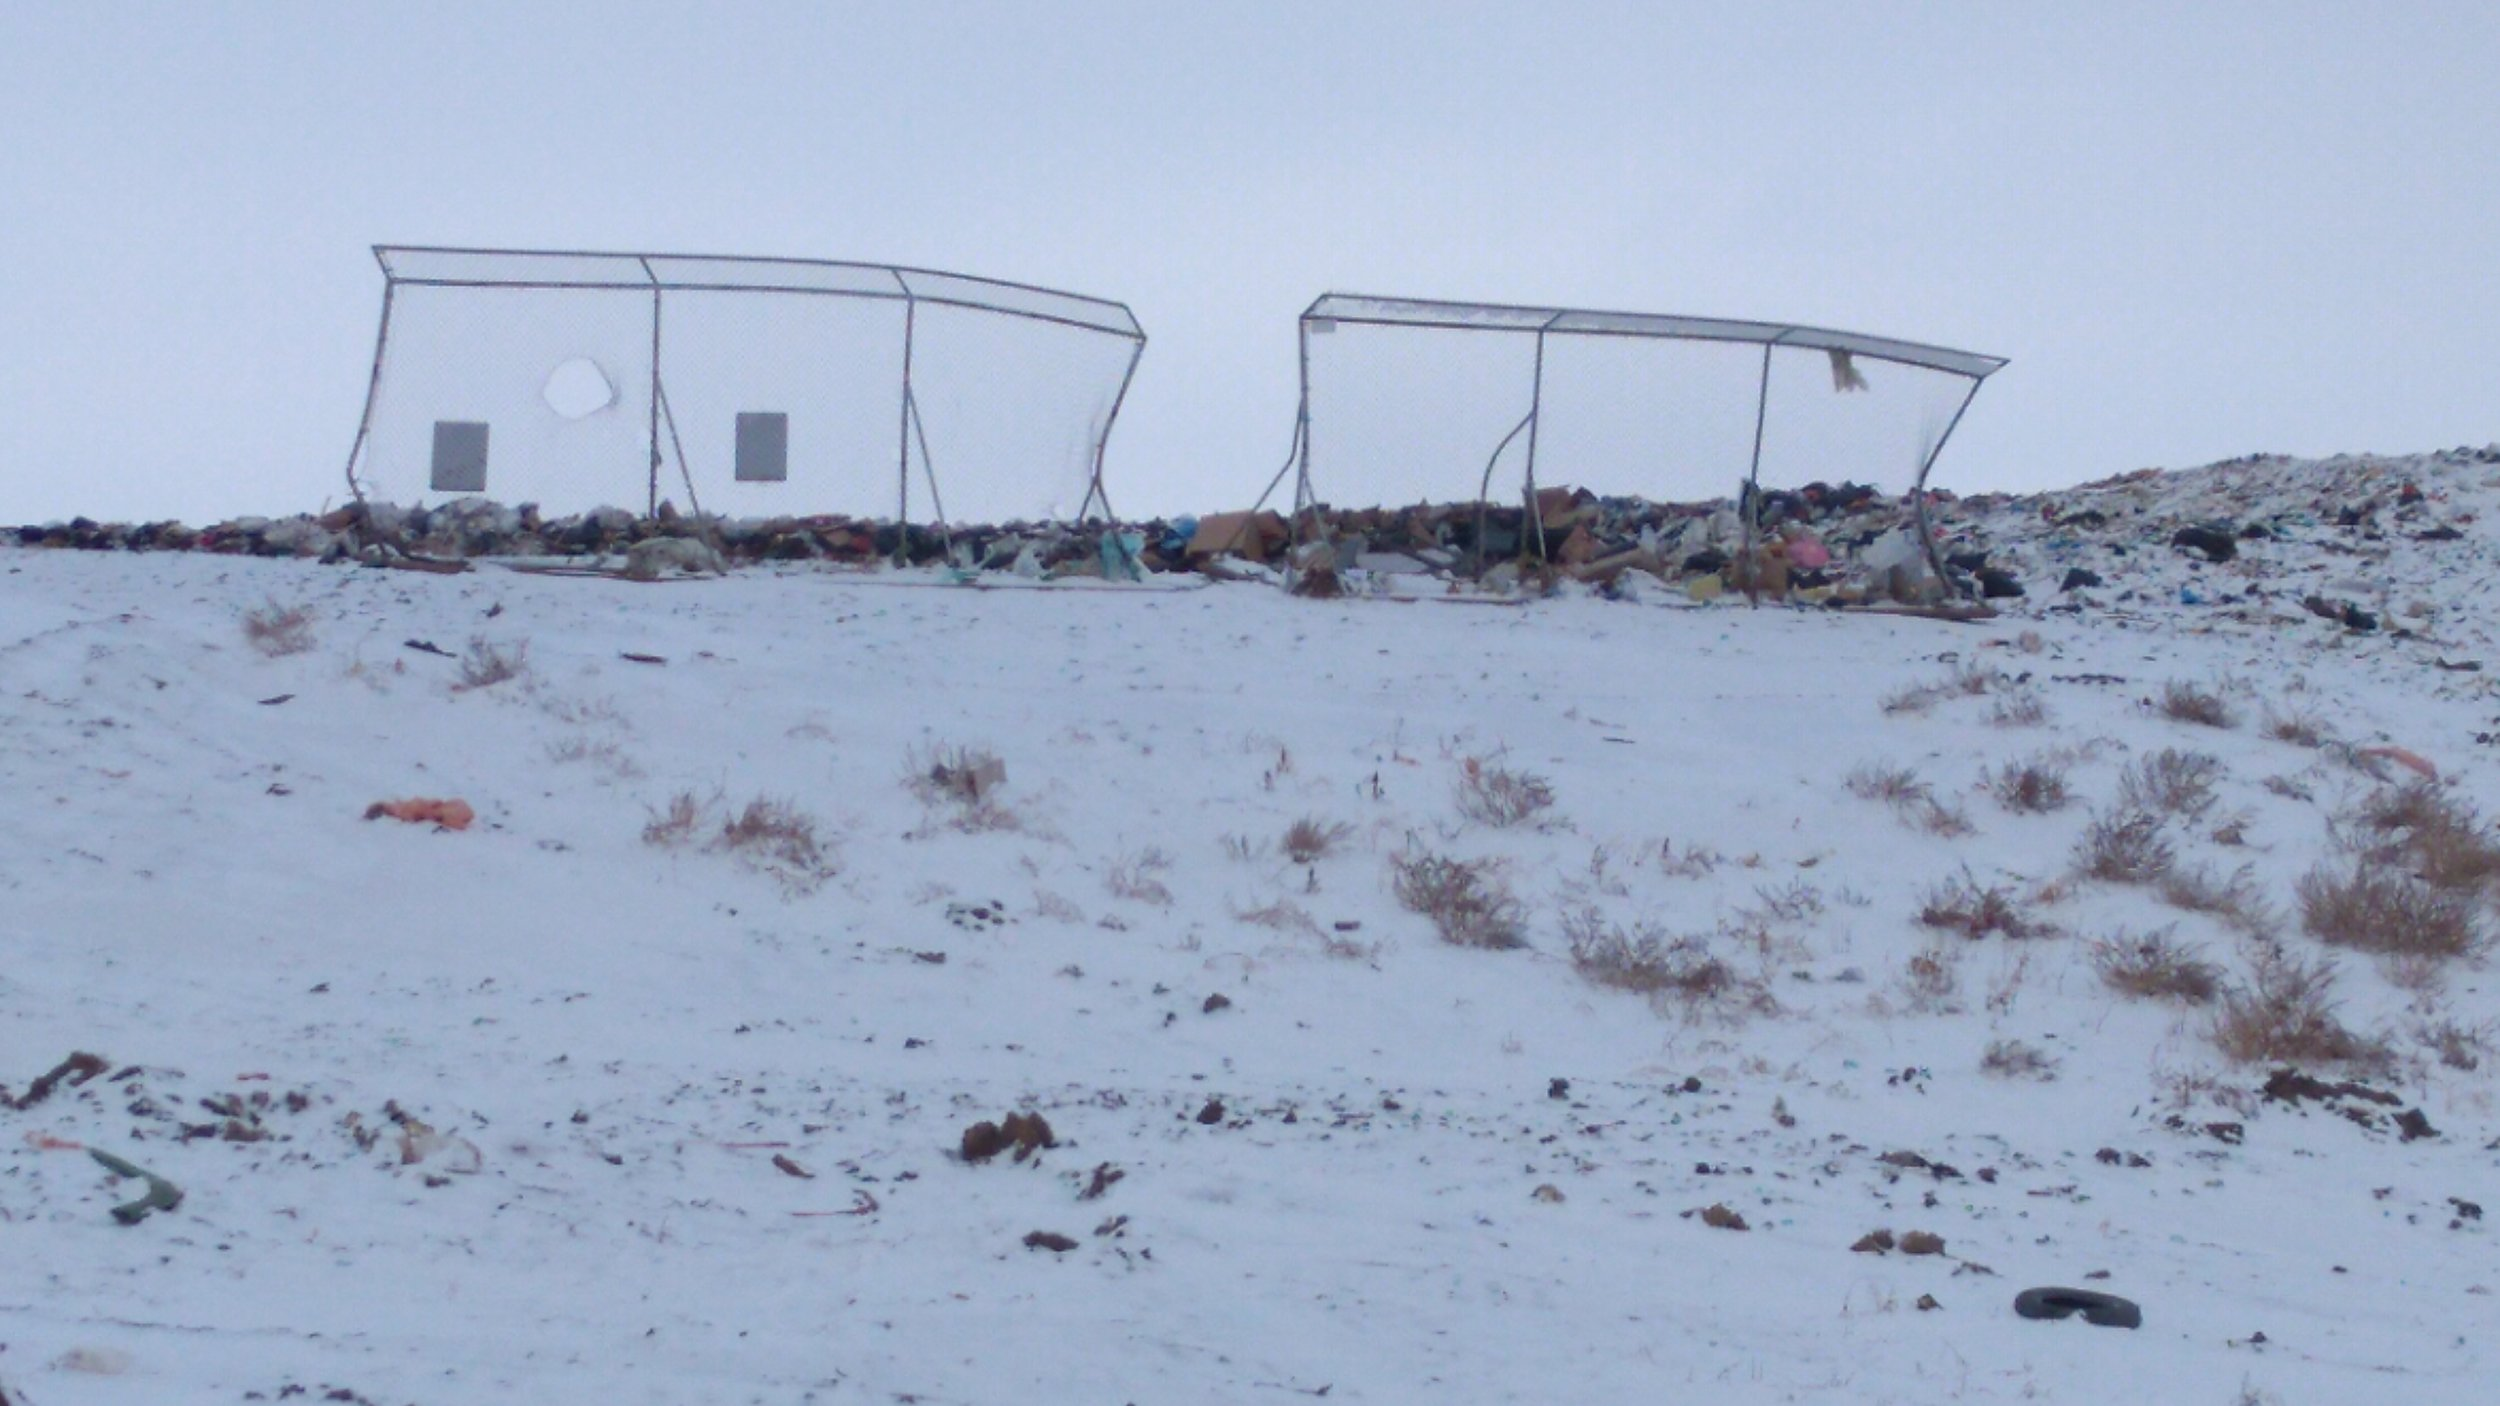 Portable Fencing at the Landfill - MJ Independent File Photo